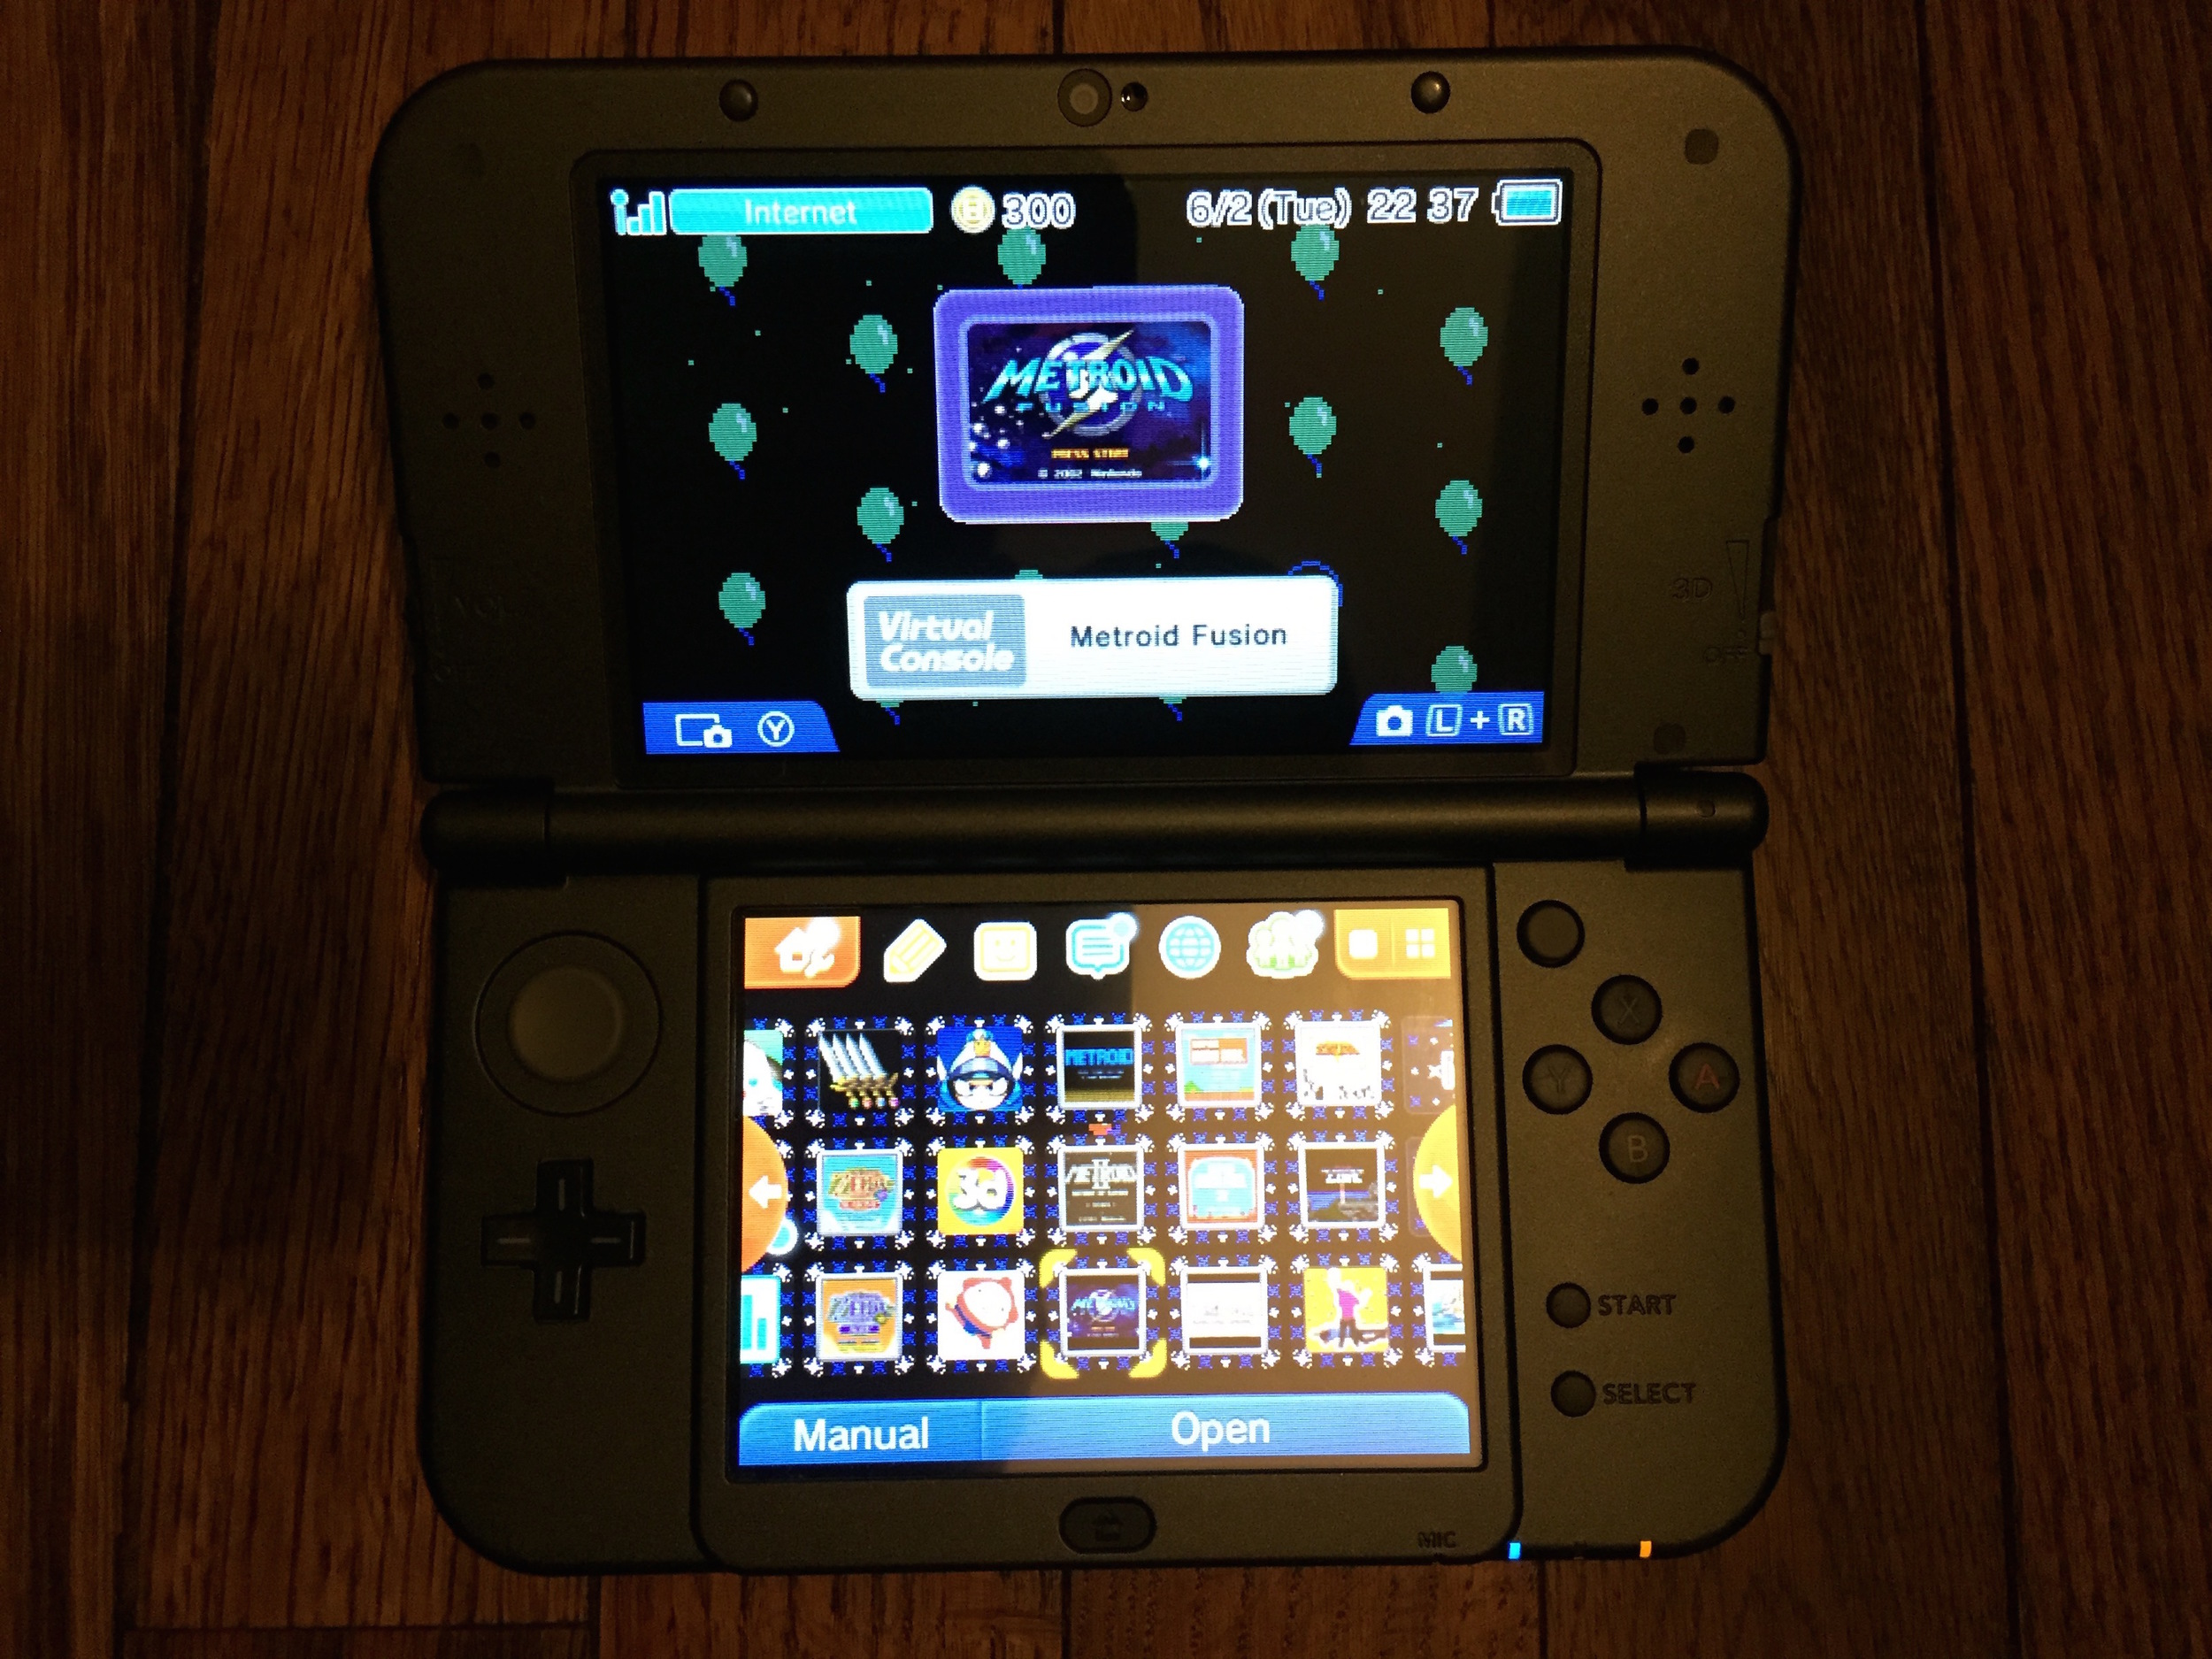 The Nintendo 3DS, easily the fastest and most advanced Nintendo OS, supports themes (check out my  Balloon Fight  one!), resizable app icons, and was the first Nintendo OS to support folders.